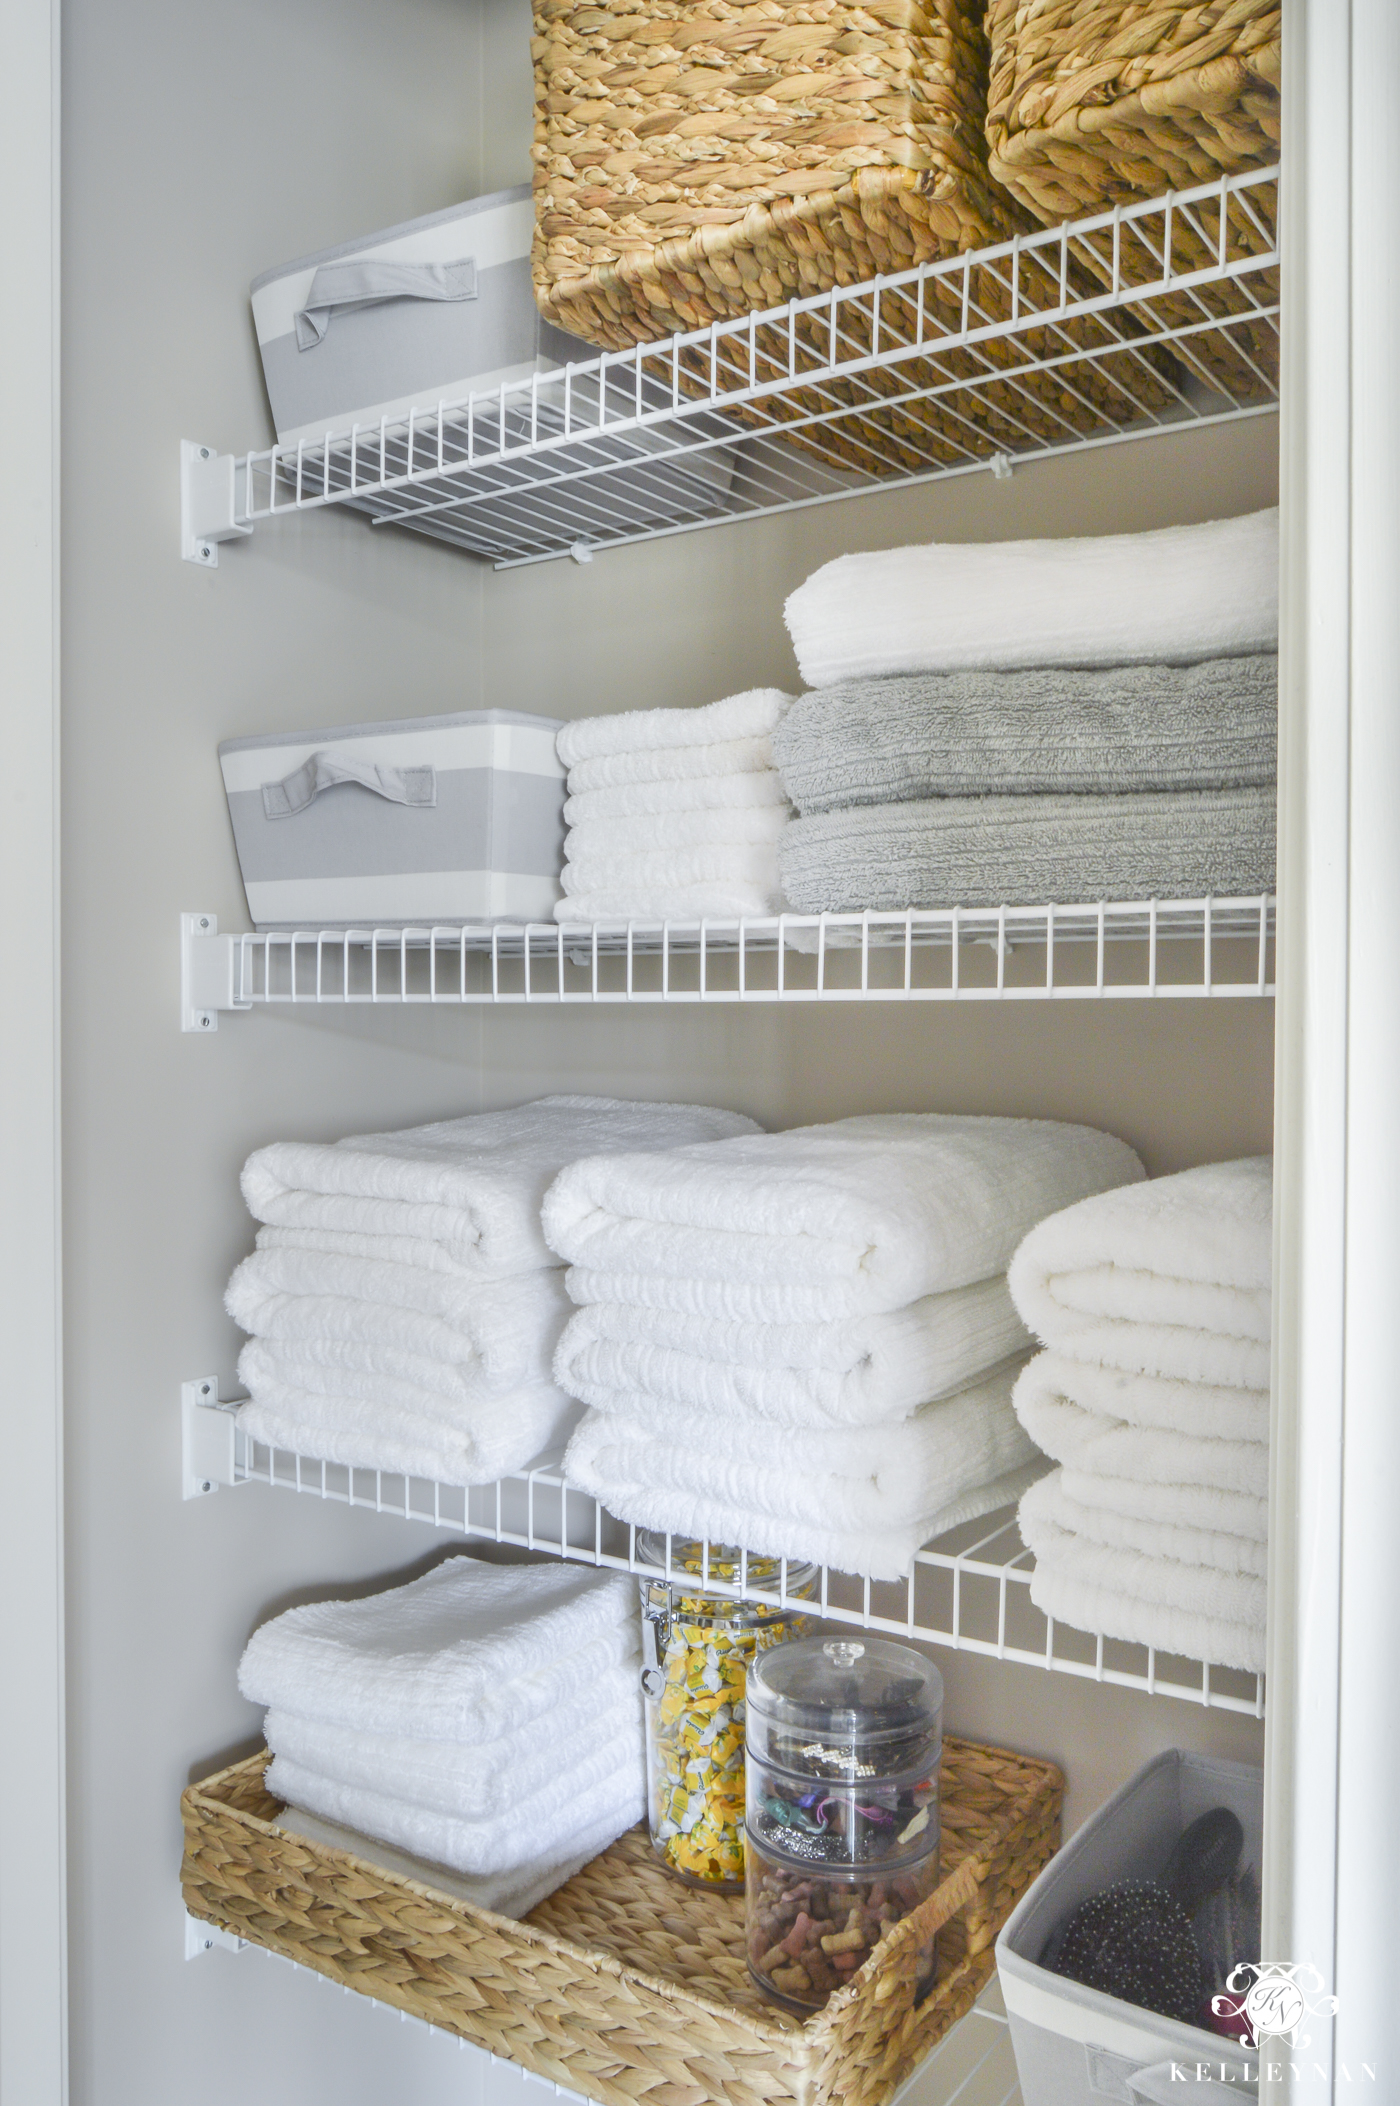 Organized Bathroom Linen Closet Anyone